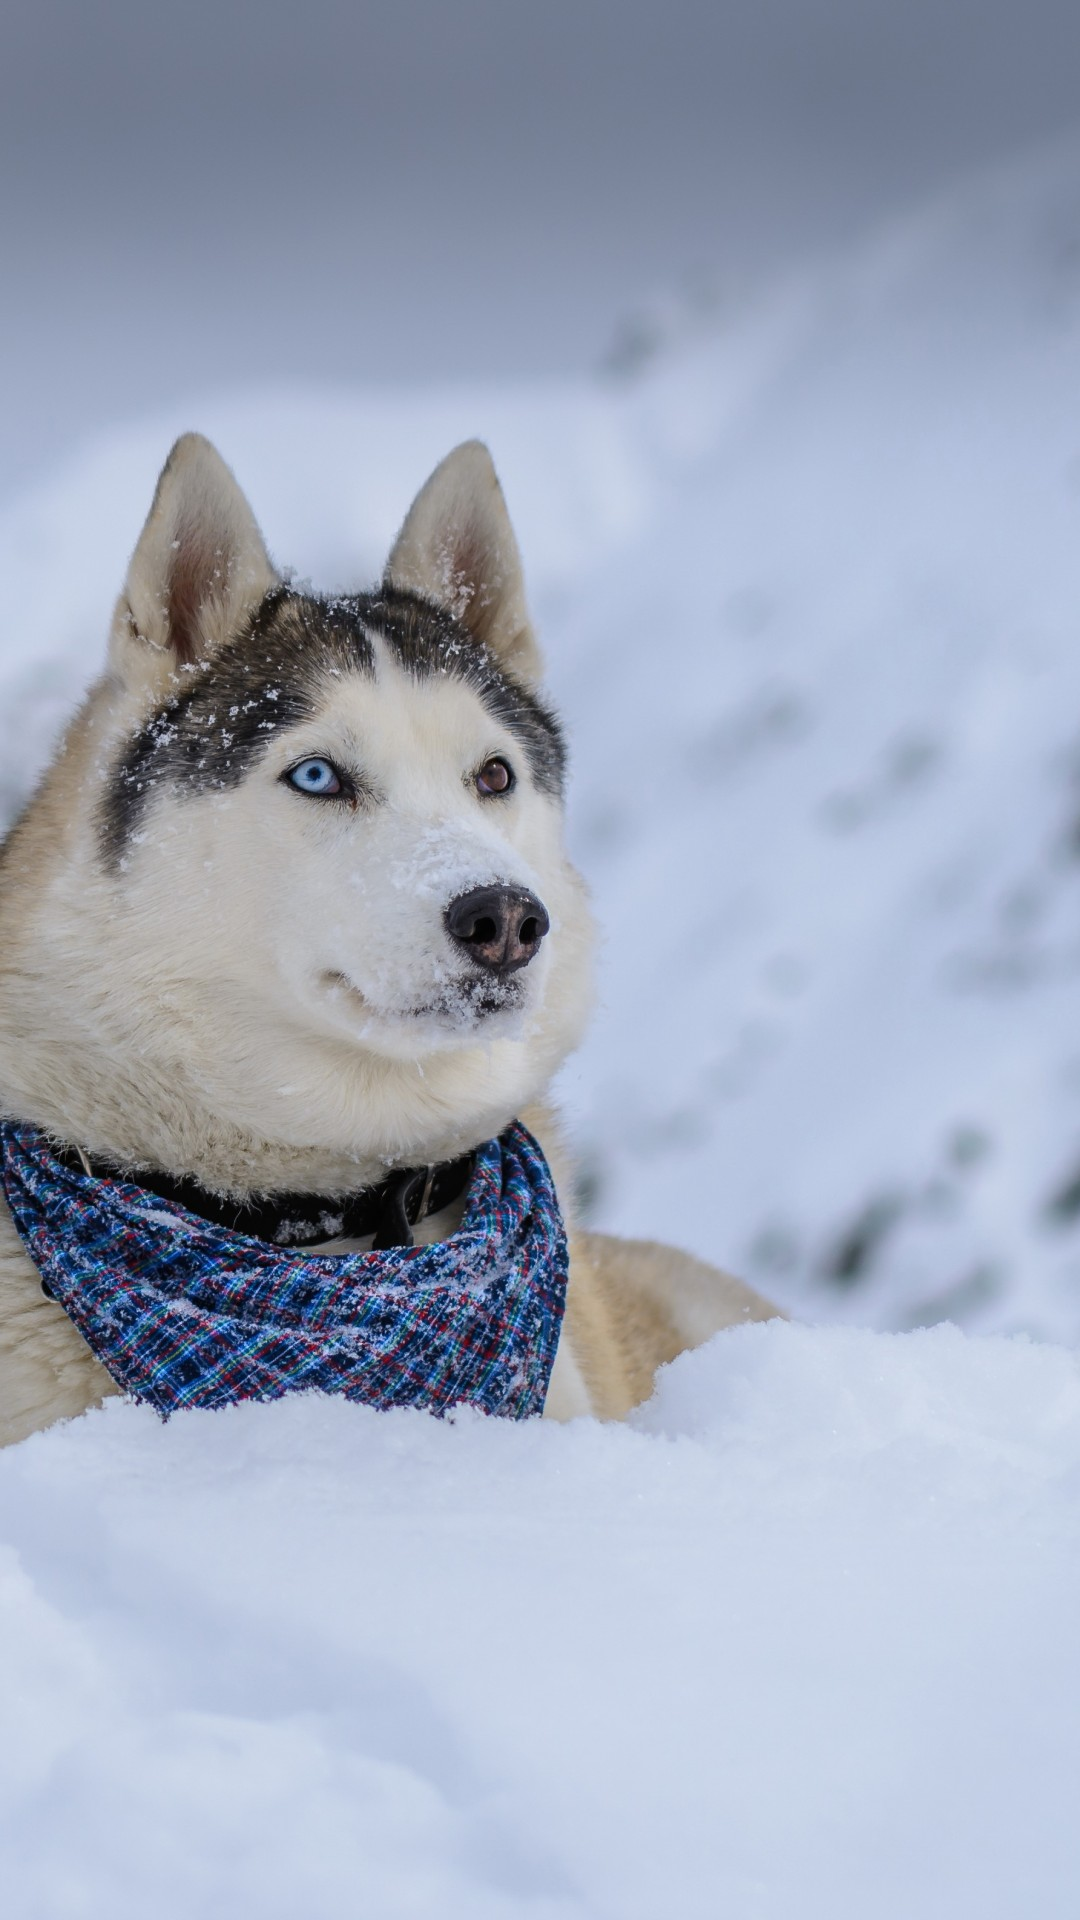 wallpaper dog husky cute animals snow winter 5k